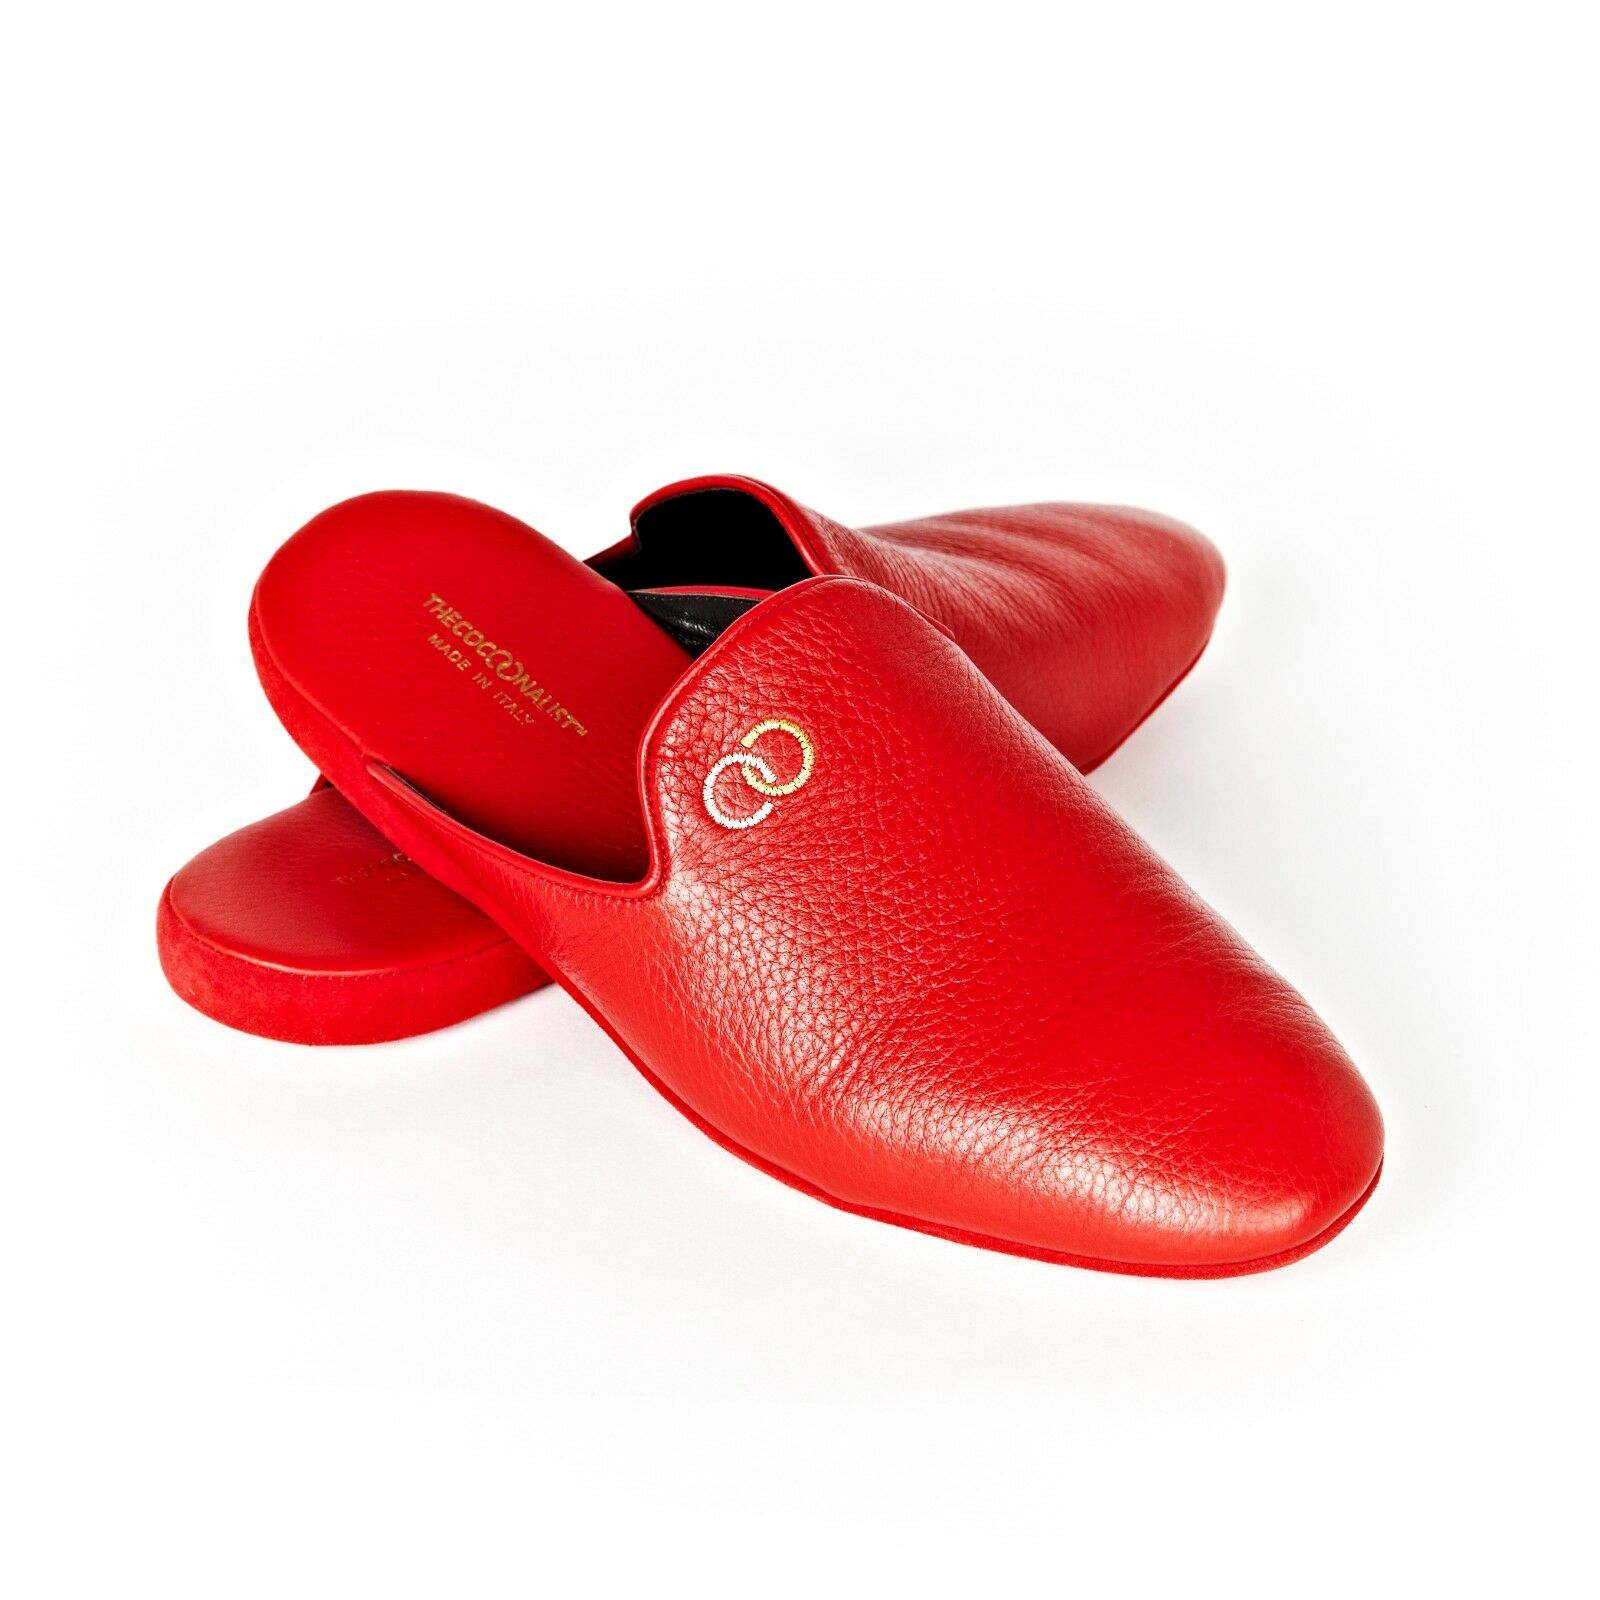 Slippers Mules cuir de CERF  rouge - Taille 45